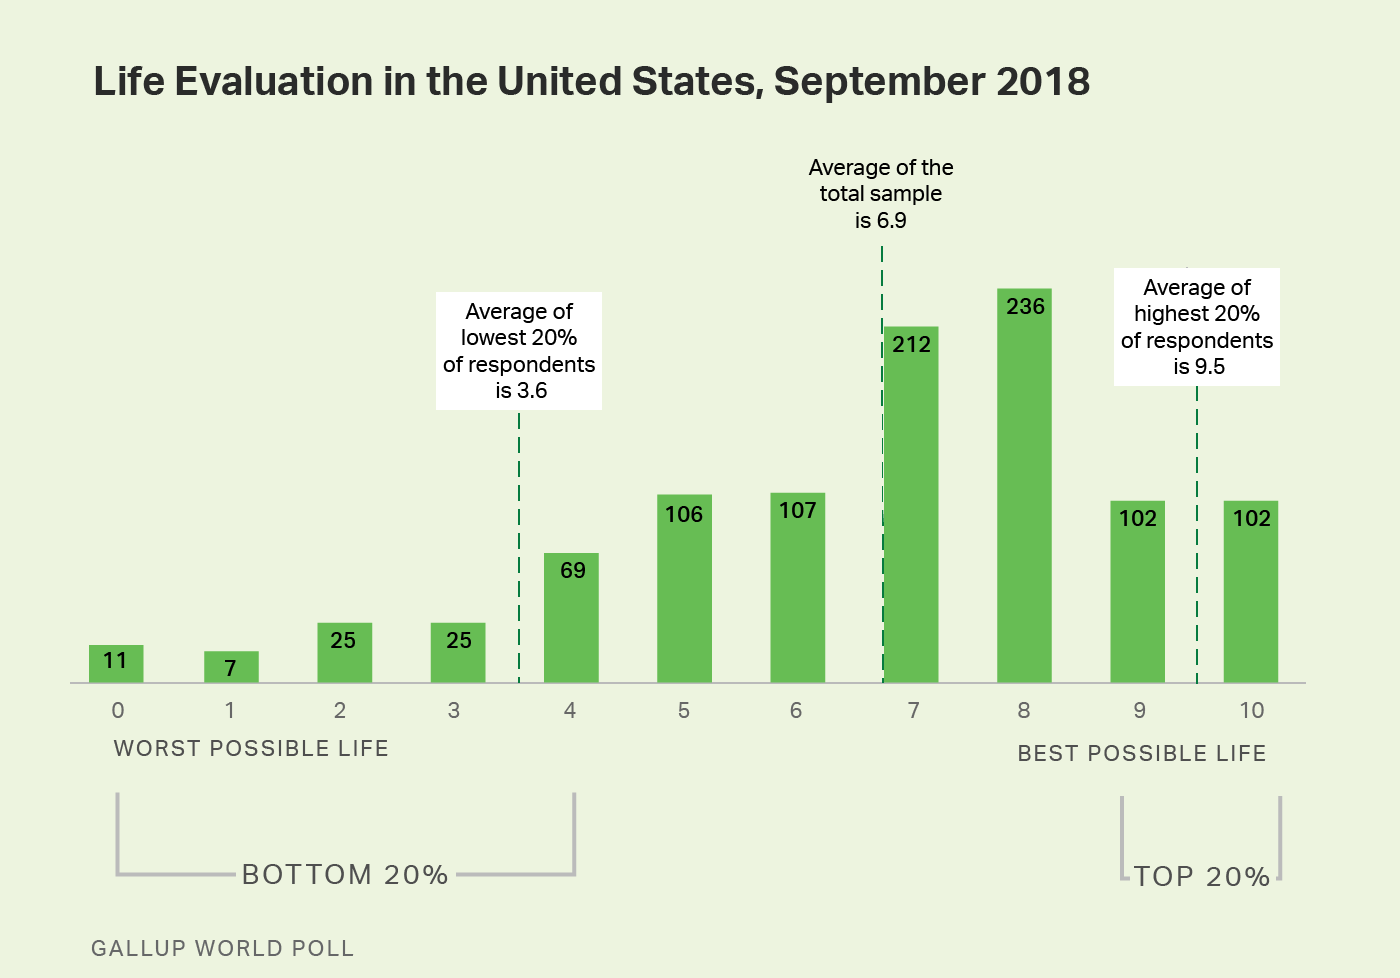 Bar chart. Distribution of life evaluation scores across the United States in 2018.